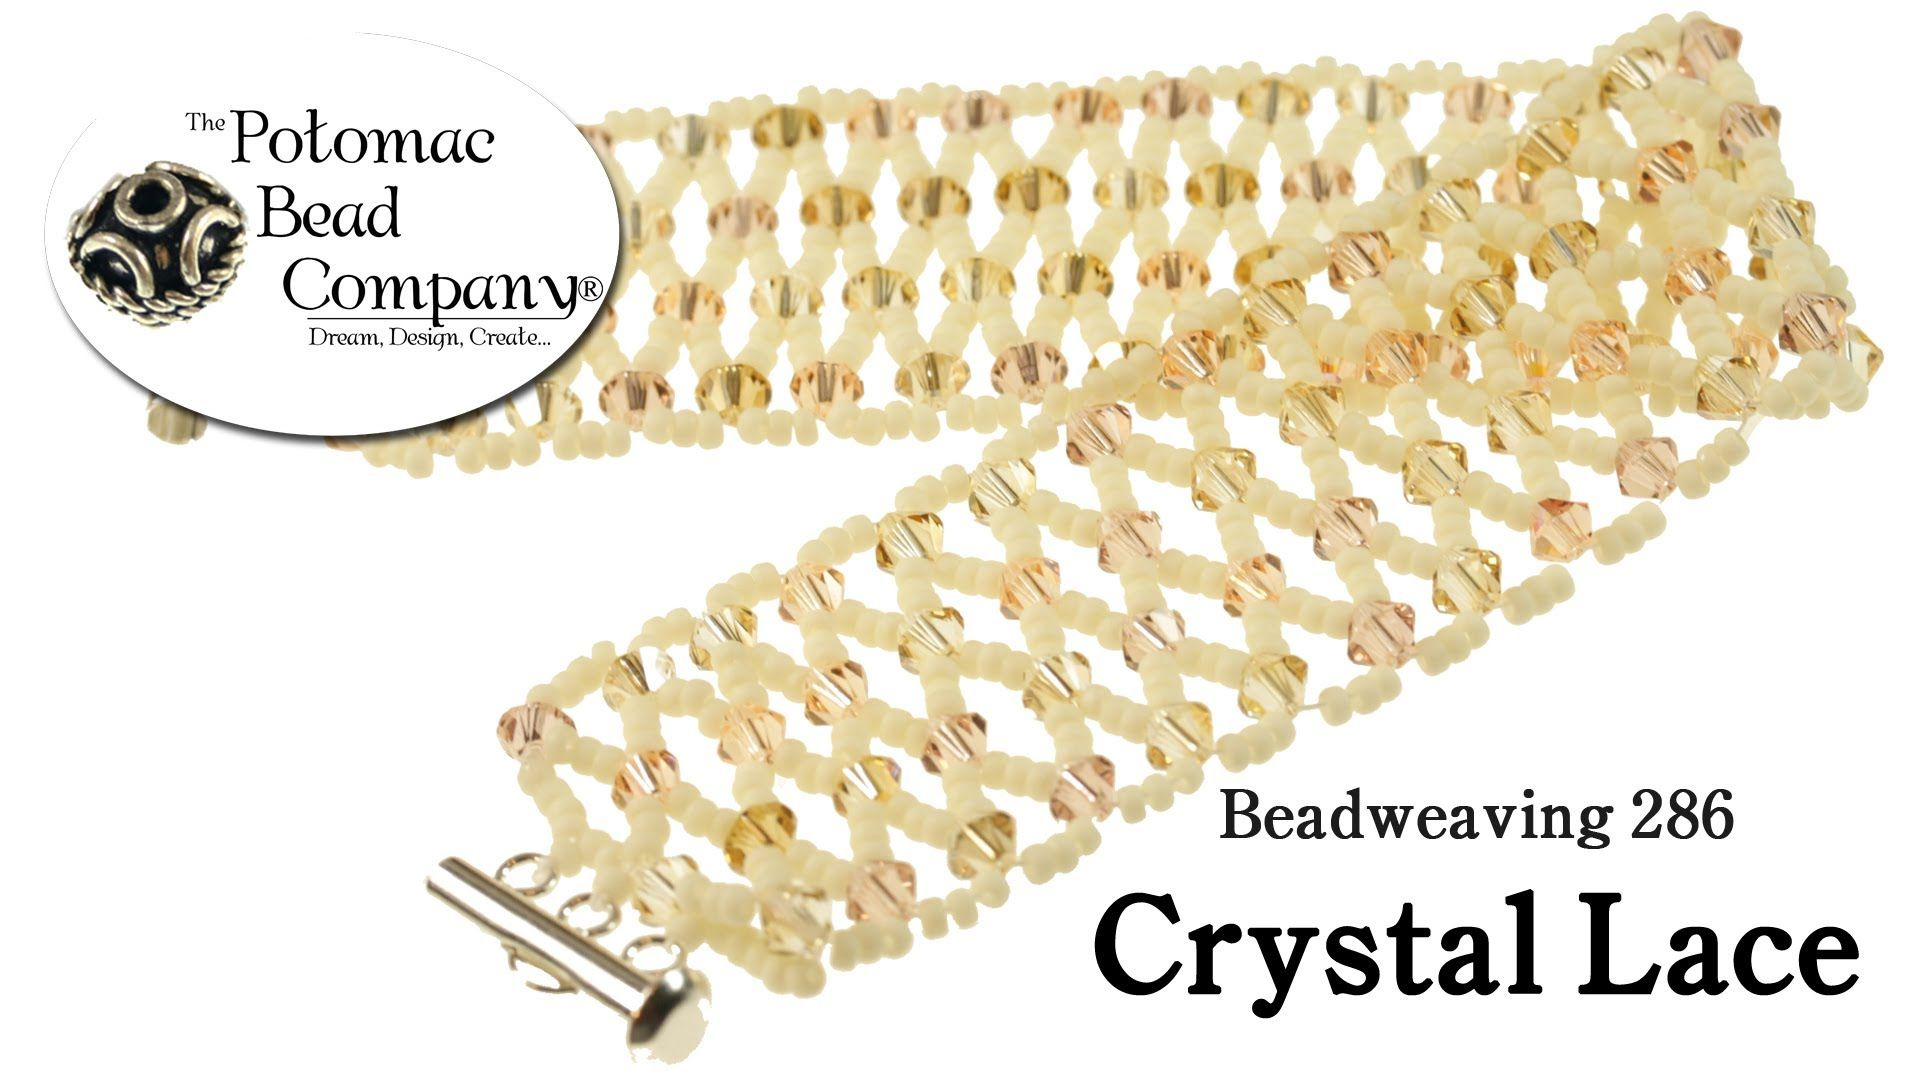 This tutorial from The Potomac Bead Company shows you how to make our 'Crystal Lace' bracelet using Miyuki seed beads, and your choice of other beads or crys...